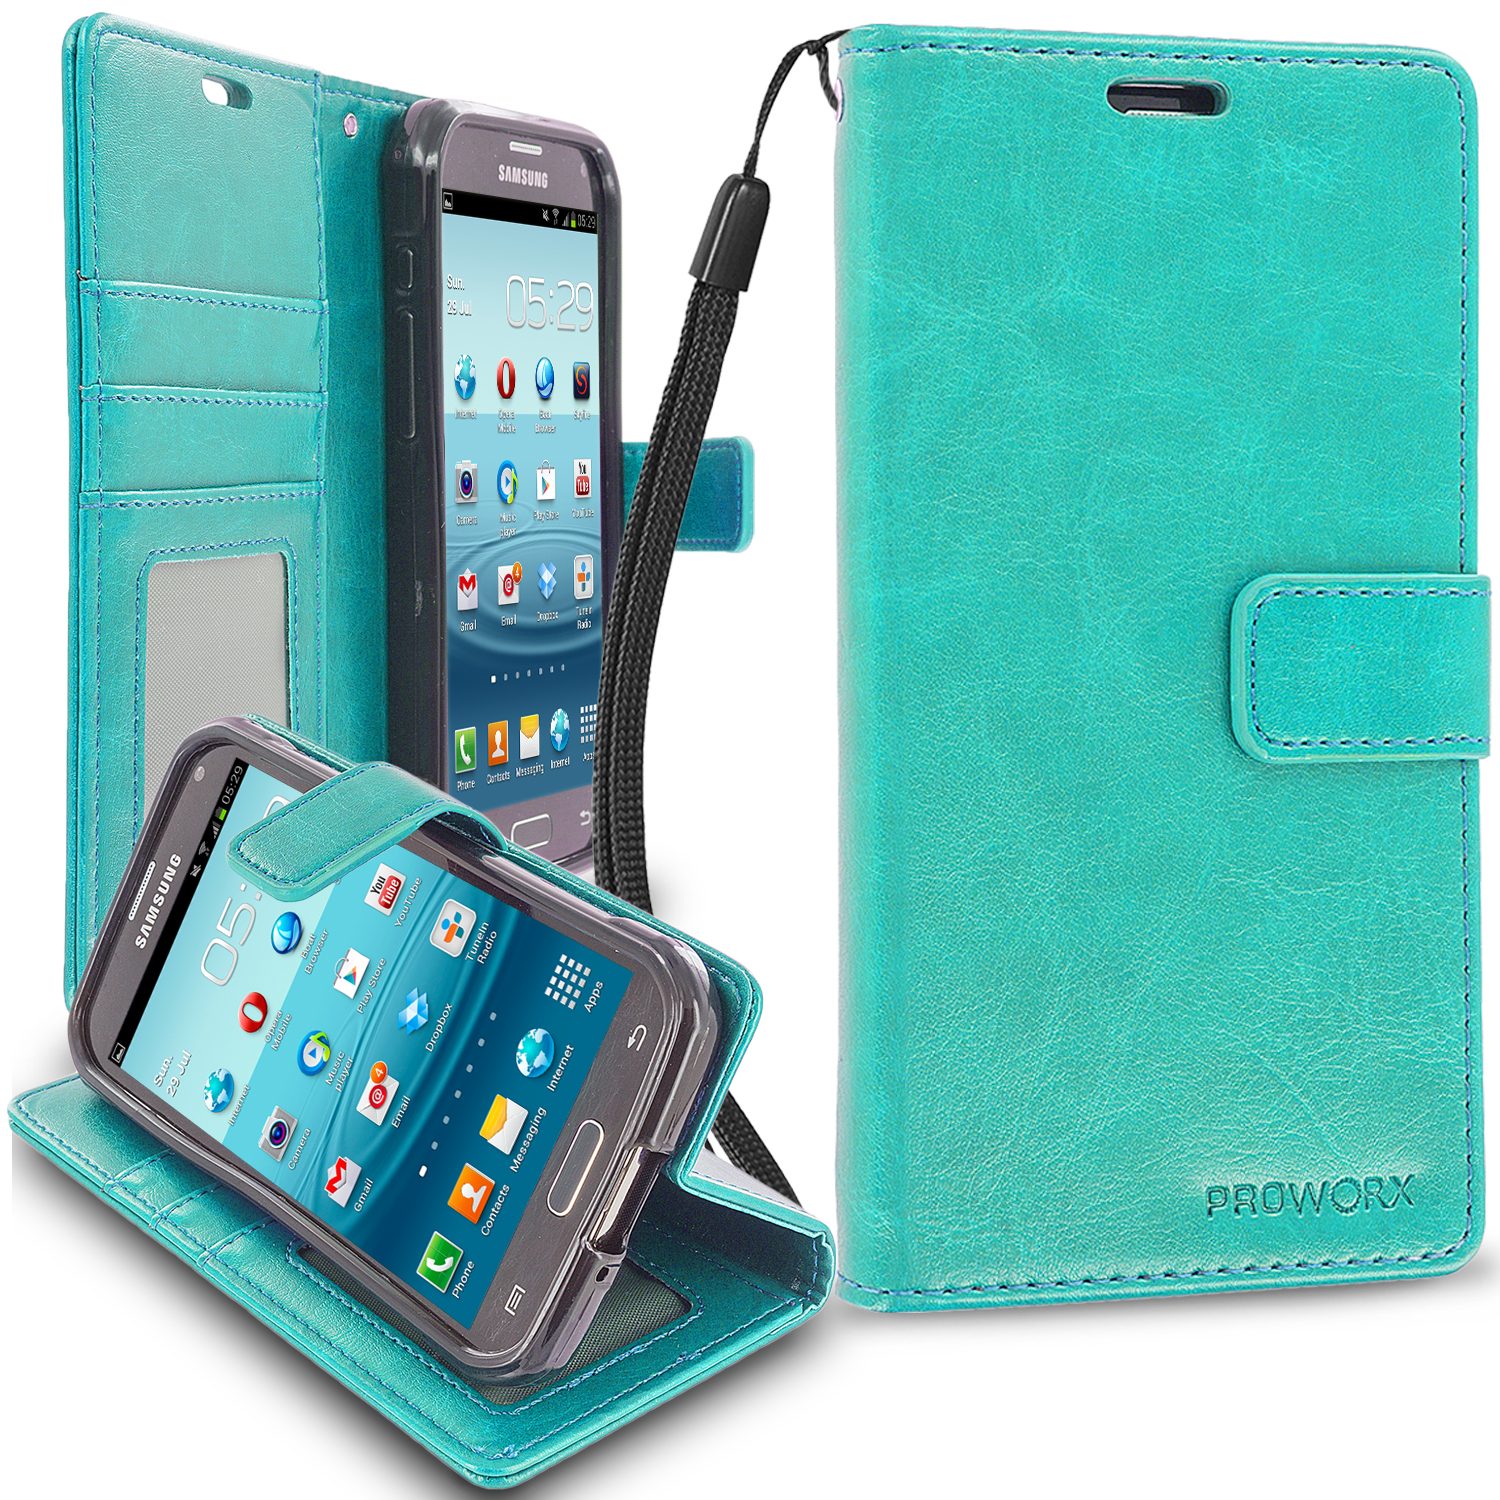 Samsung Galaxy S5 Active Mint Green ProWorx Wallet Case Luxury PU Leather Case Cover With Card Slots & Stand